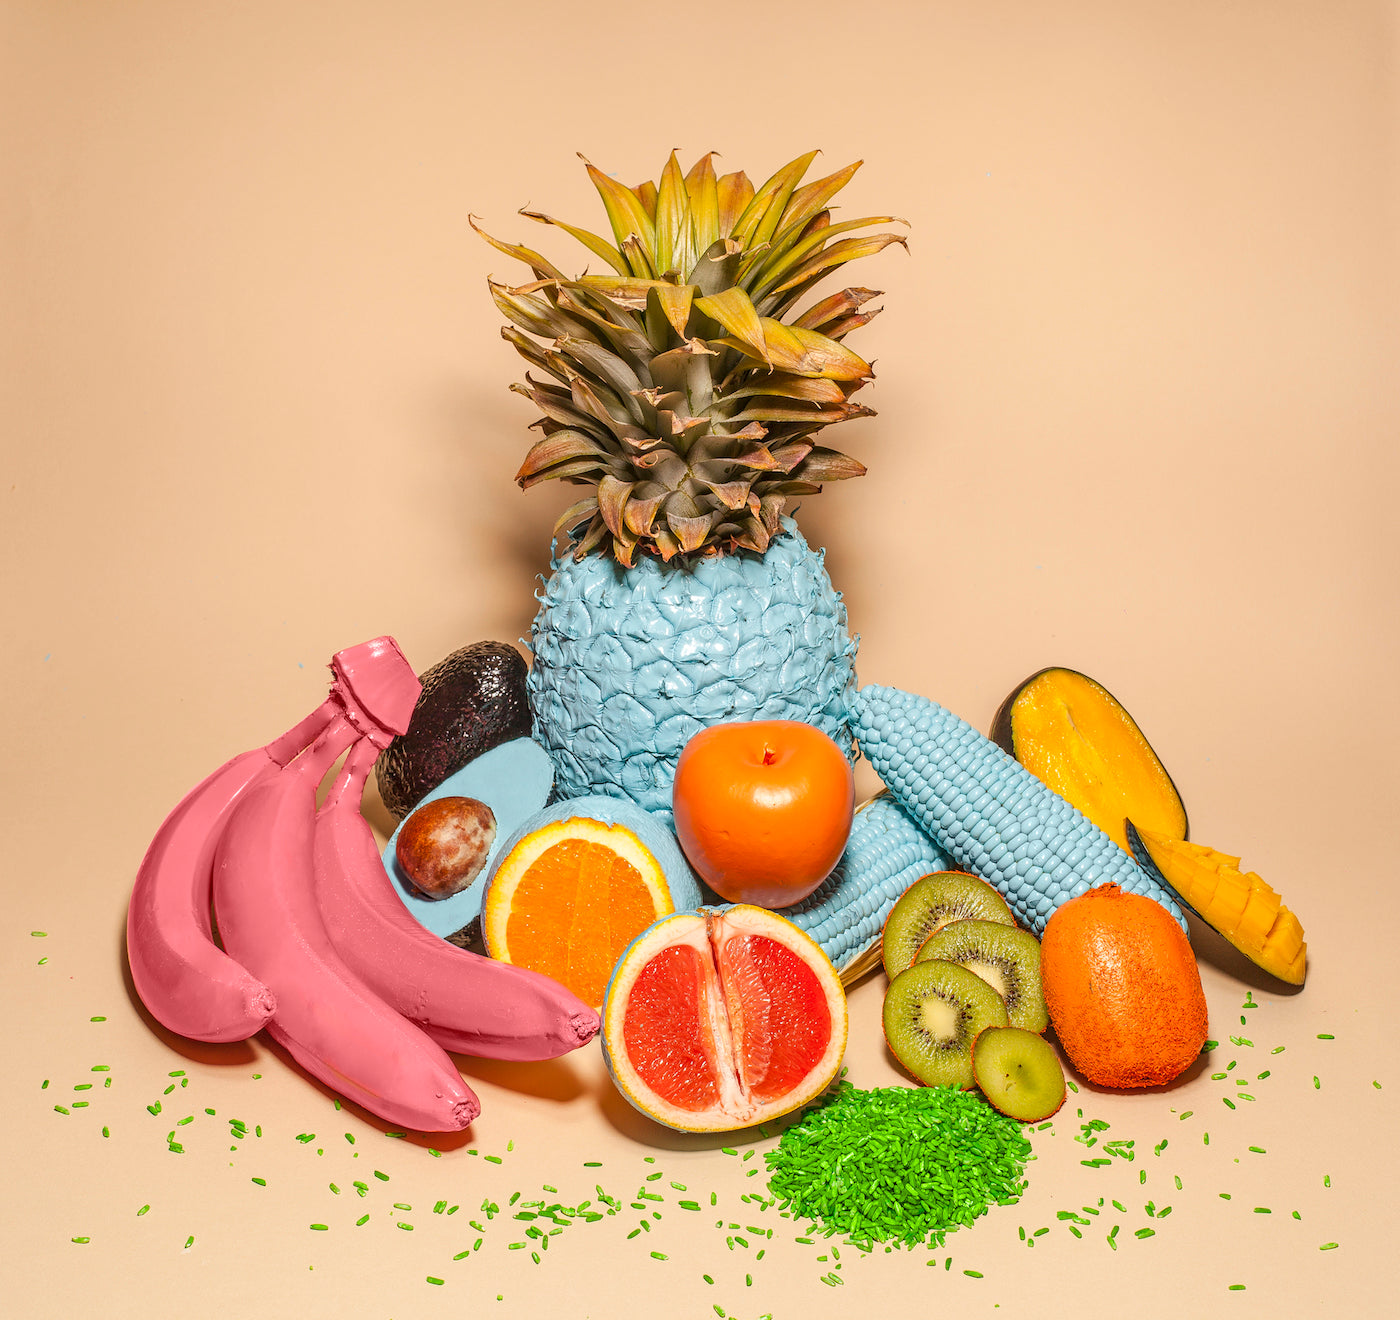 Playfully Imagining How Genetically Modified Fruits Might Look Enrico Becker